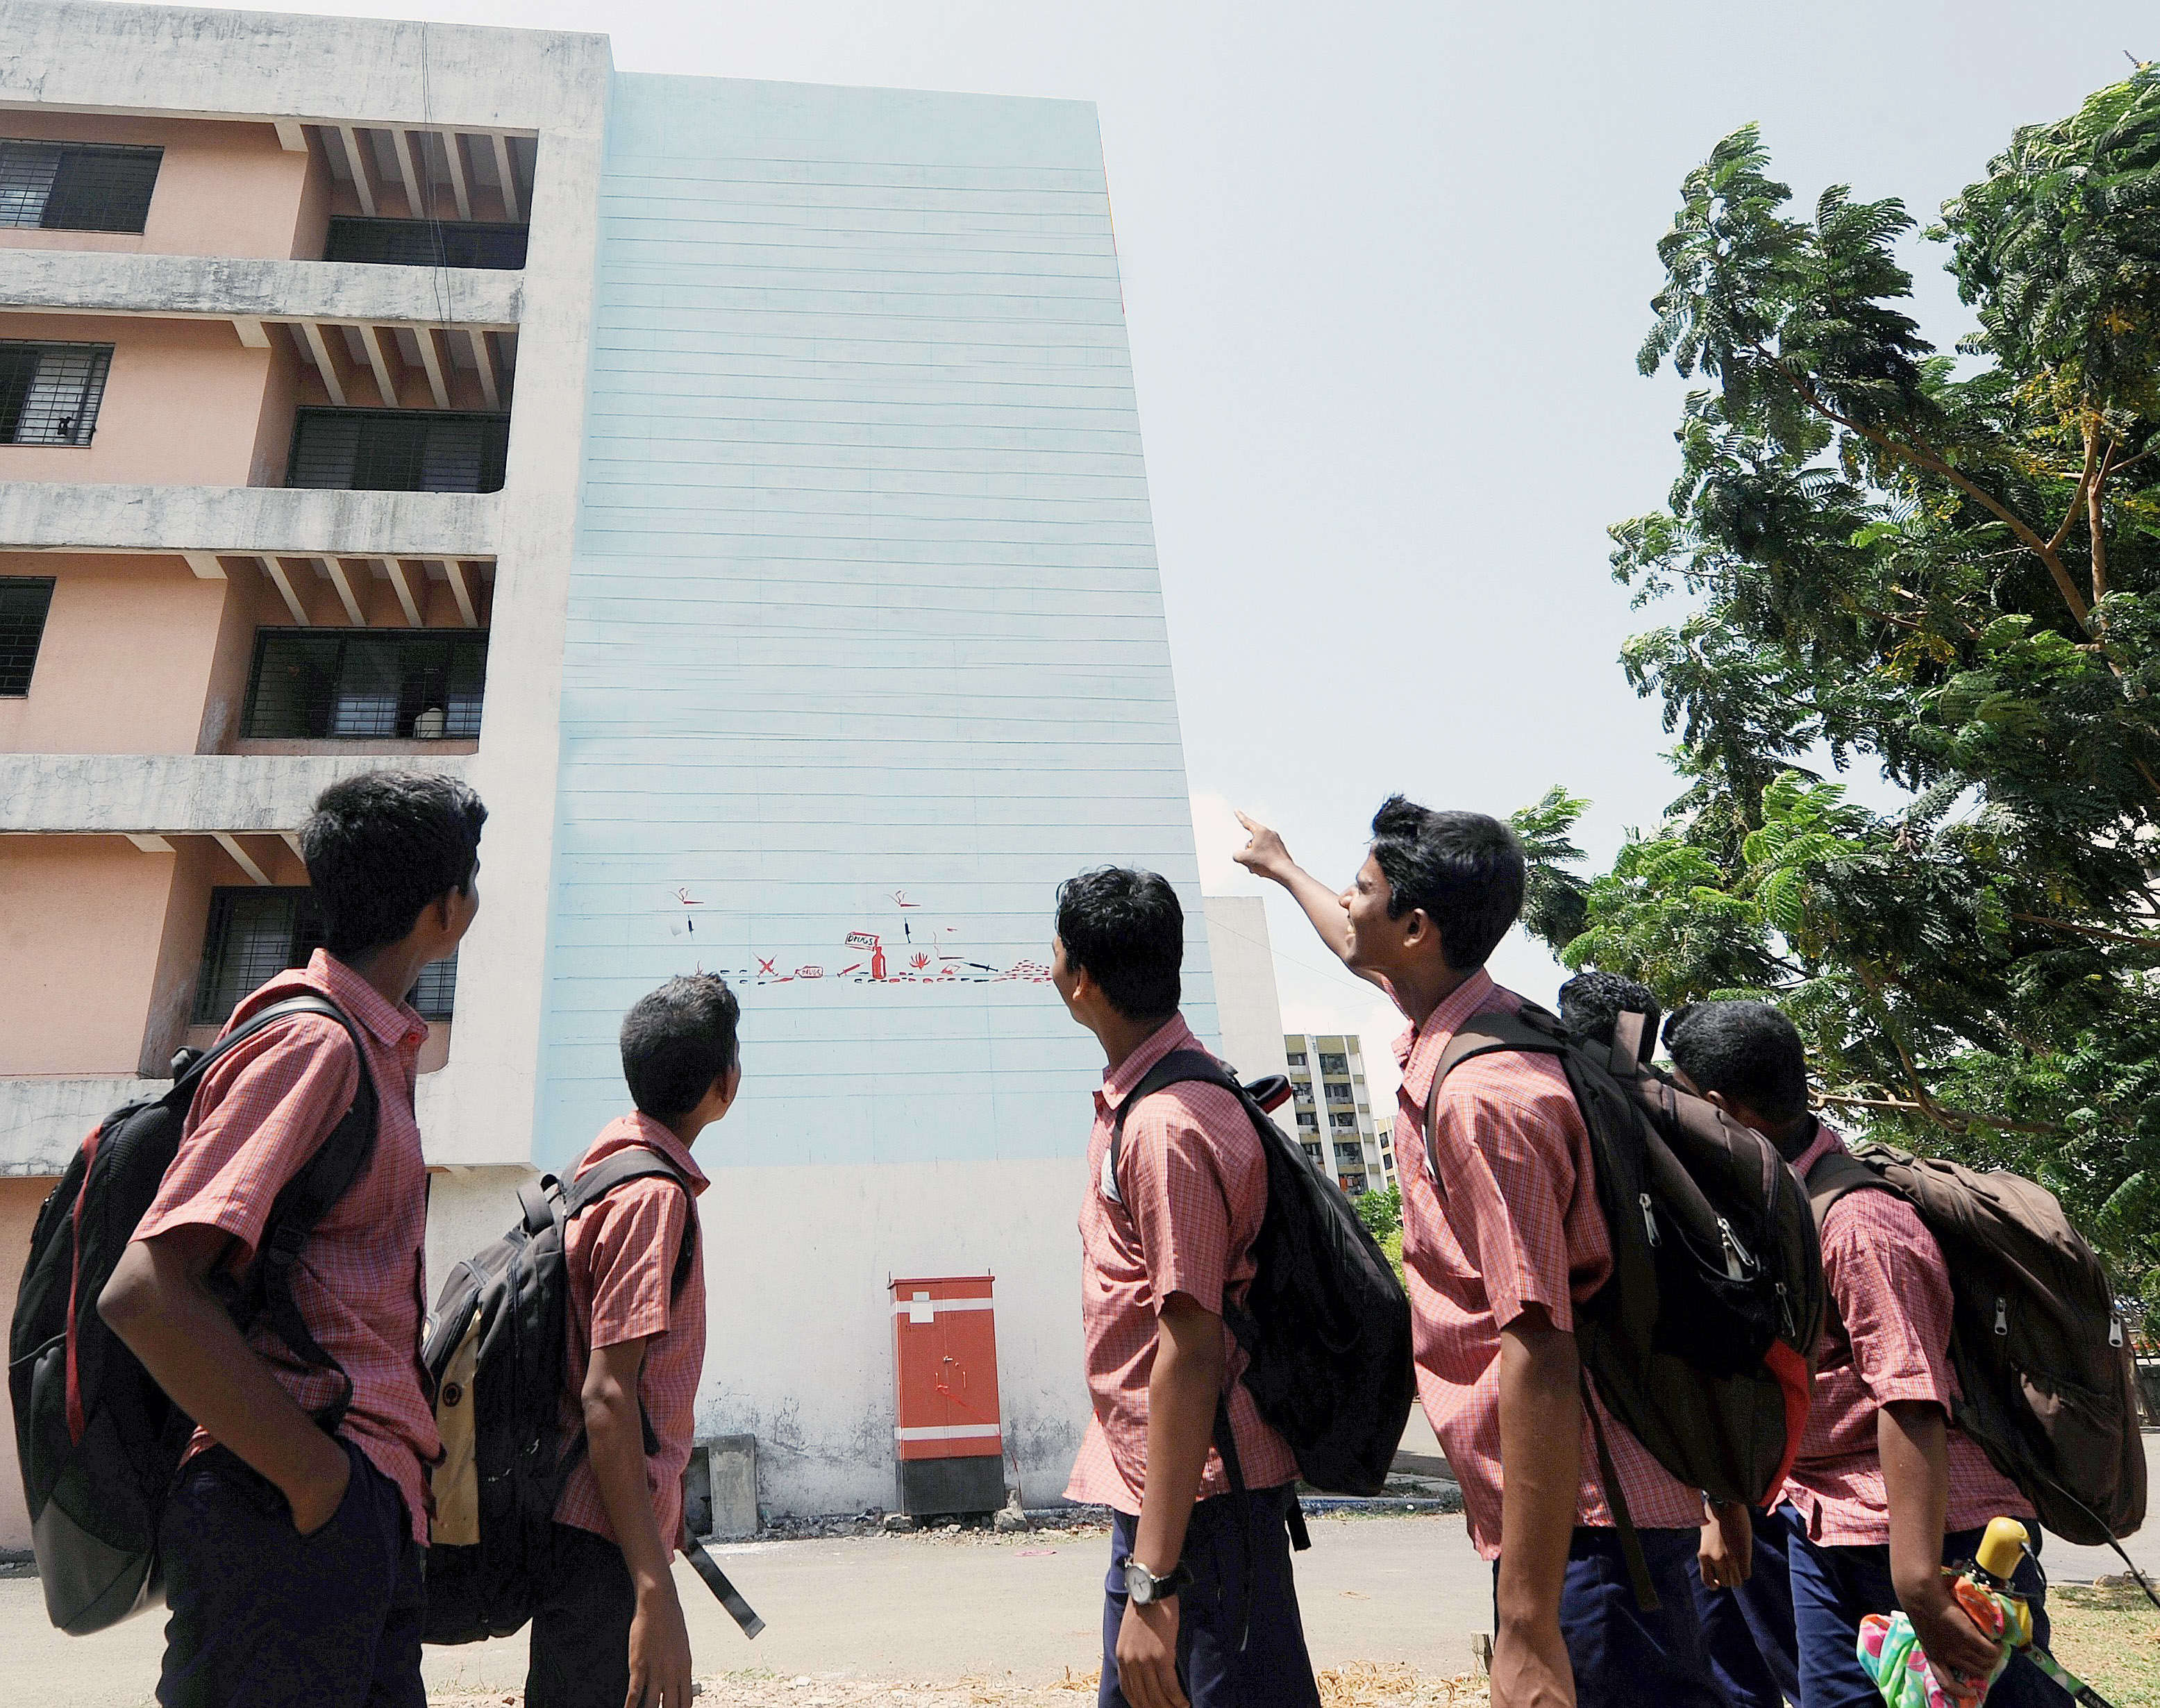 Here are some new regulations that will help the Indian education sector evolve